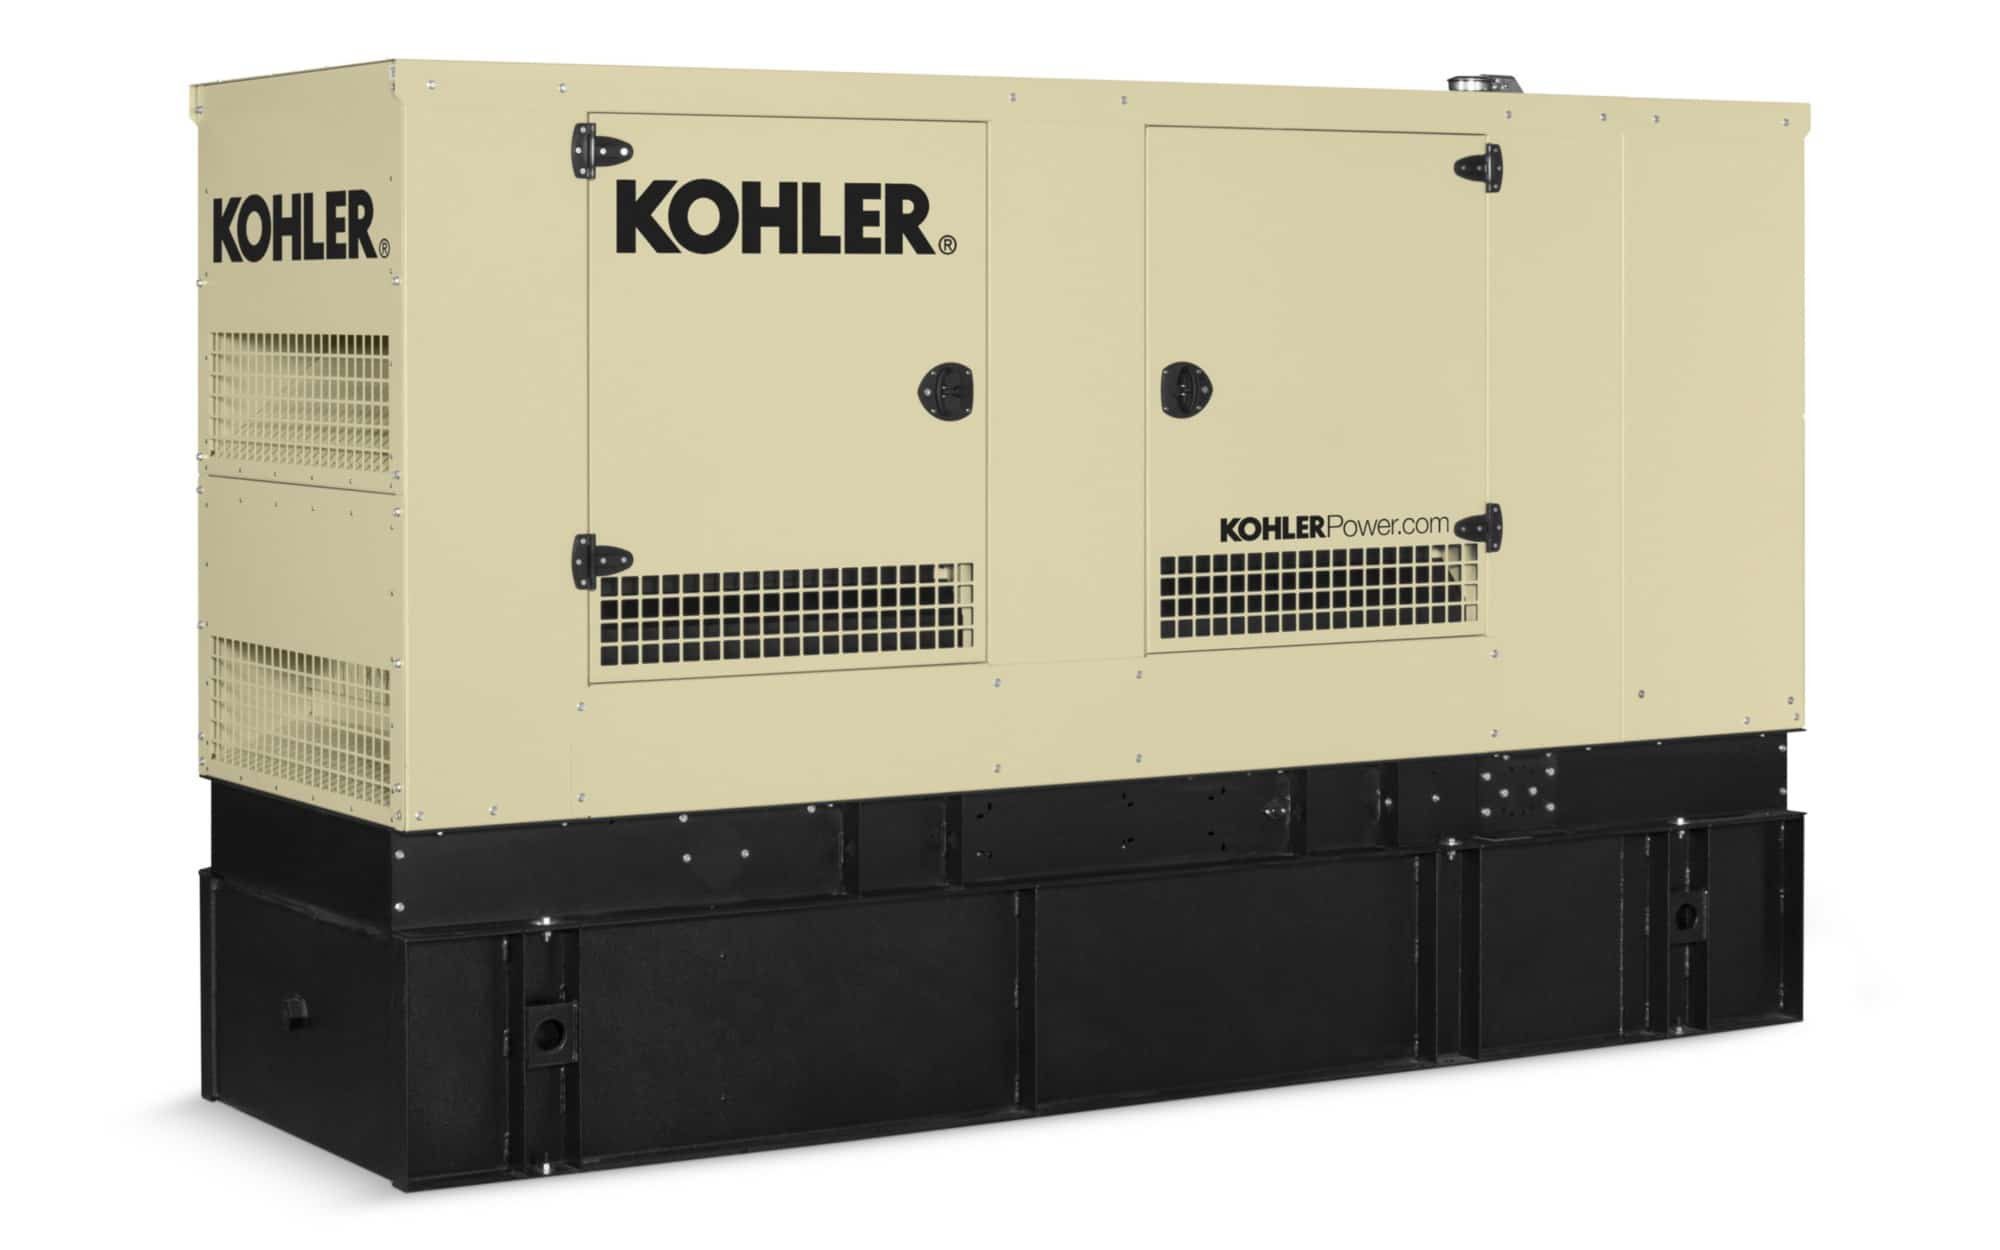 New 150 kW Kohler 150REOZJF Diesel Generator – EPA Tier 3 – COMING IN!